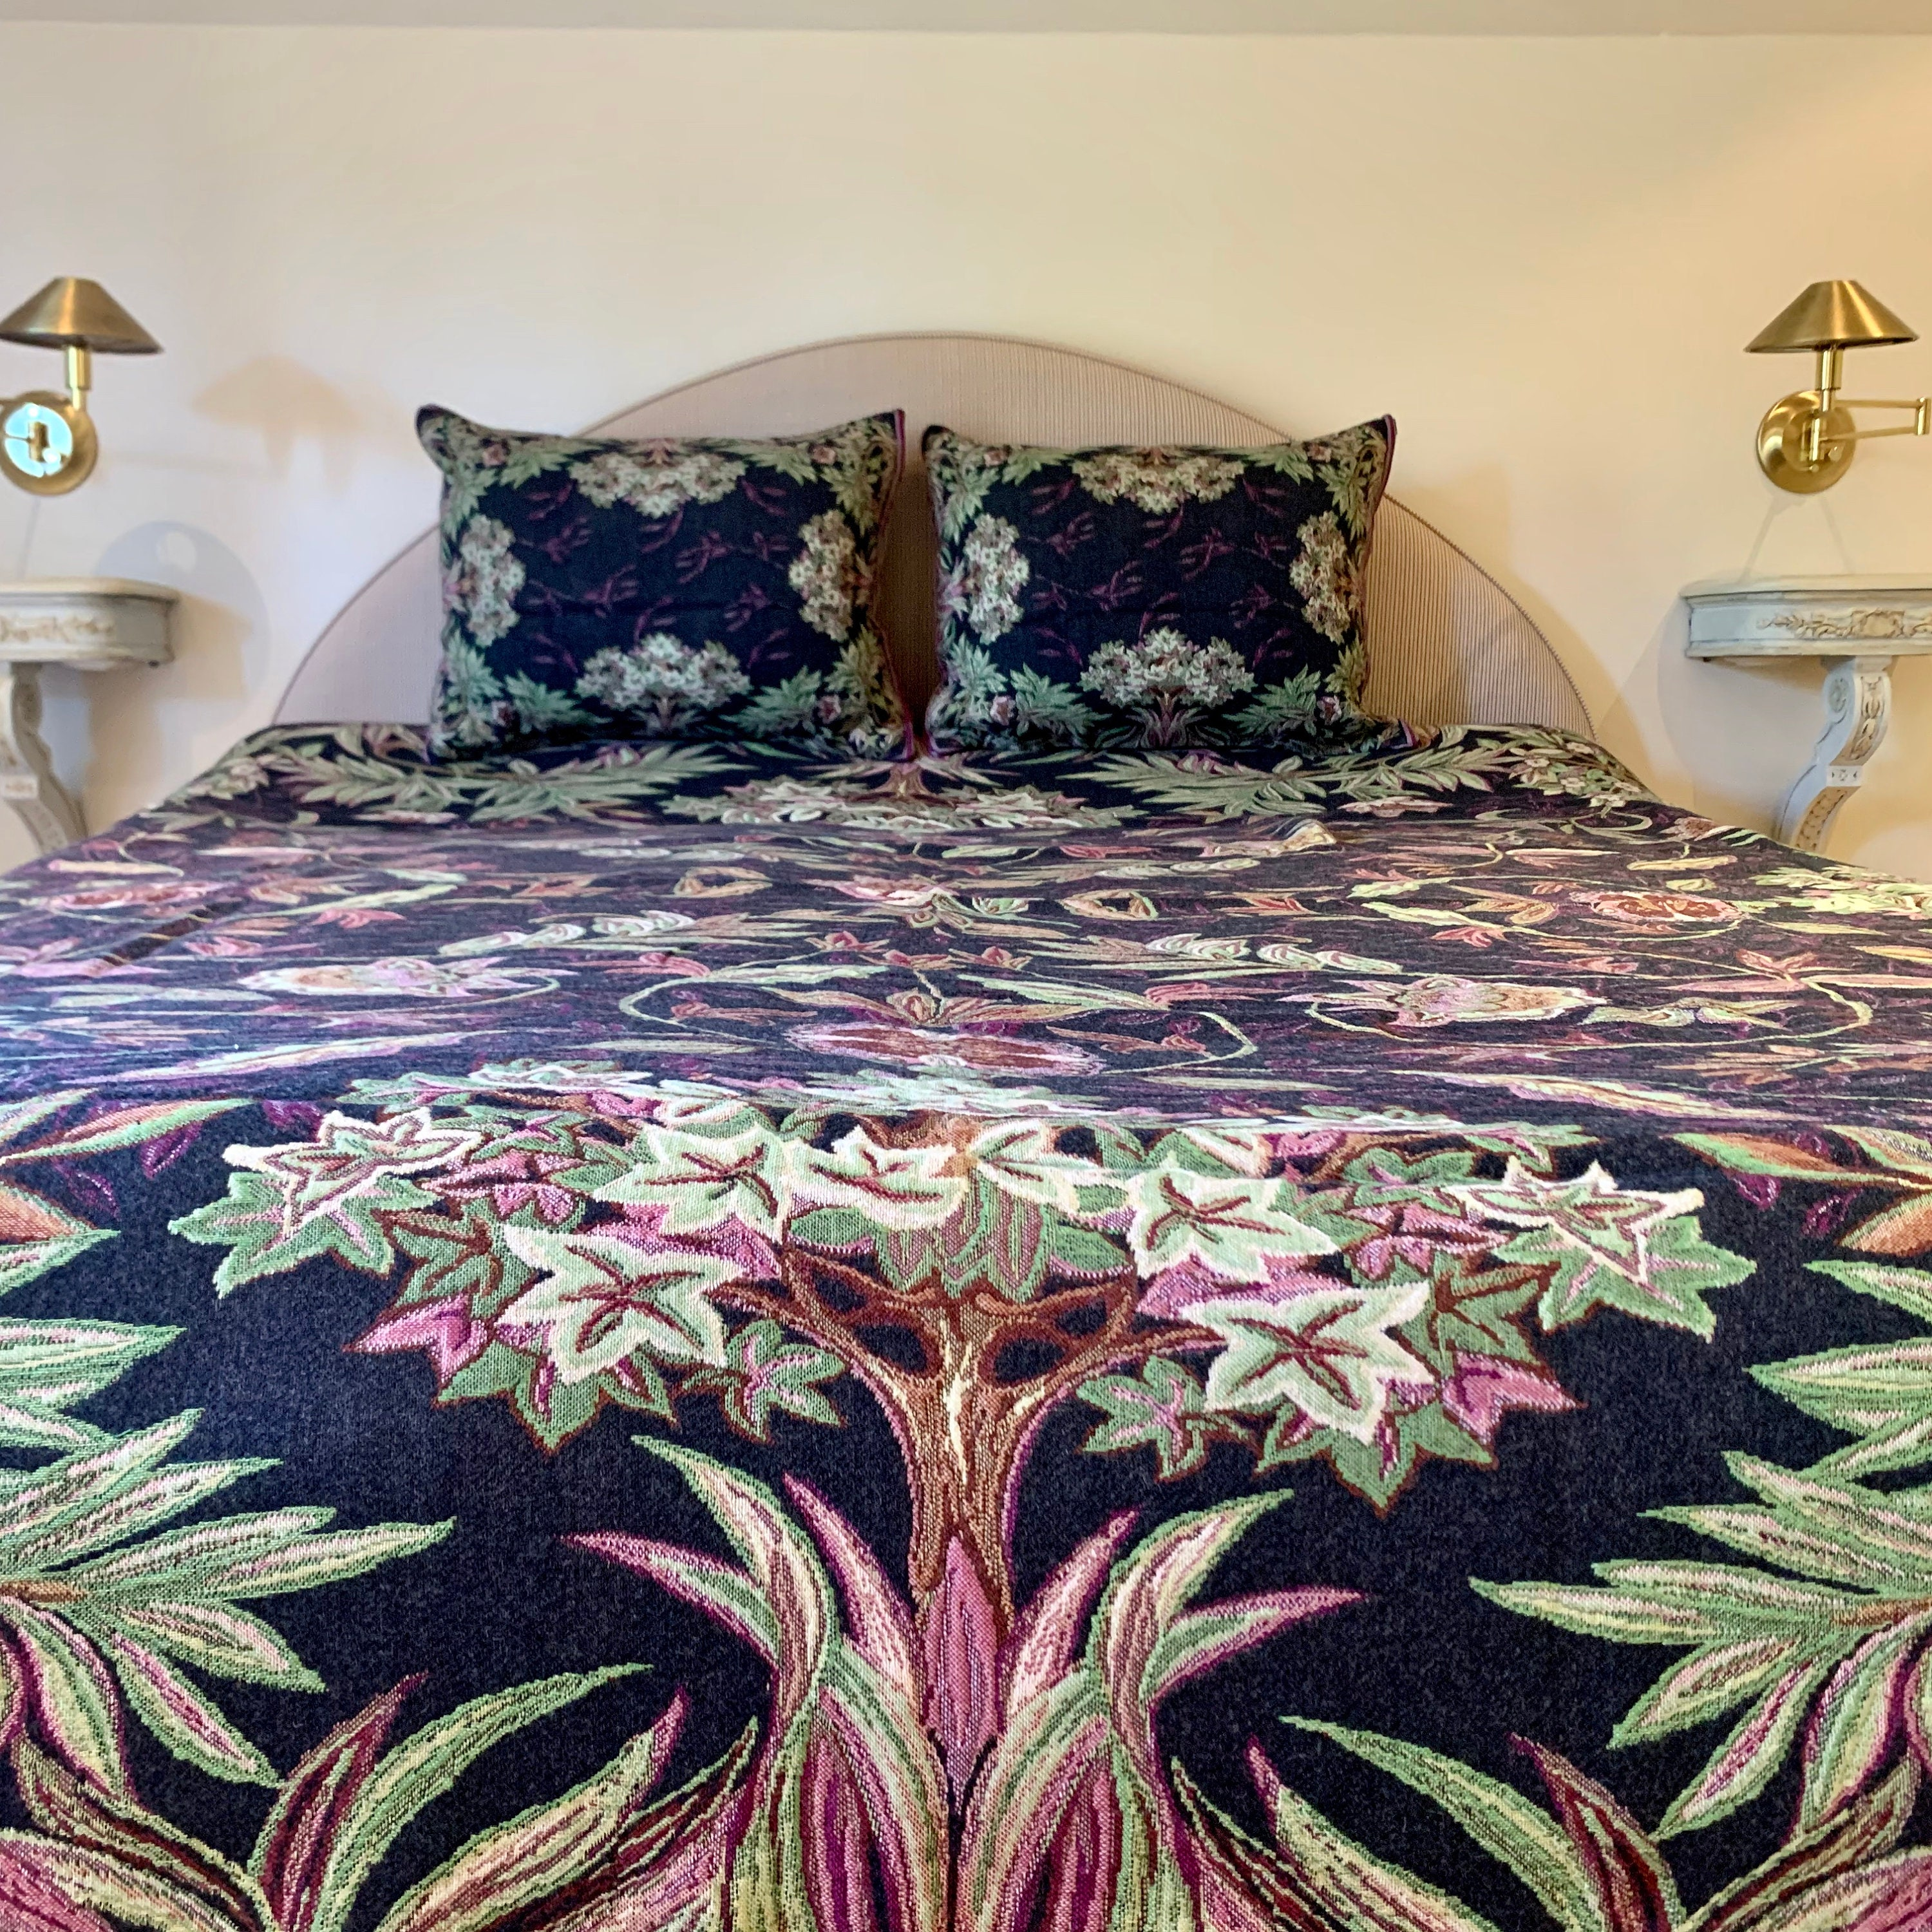 Tapestry Bedspread Arboreto Bed Coverlet And Shams Tapestry Bed Throw Sofa Throw Sofa Coverlet Tapestry Throw Blanket King Size